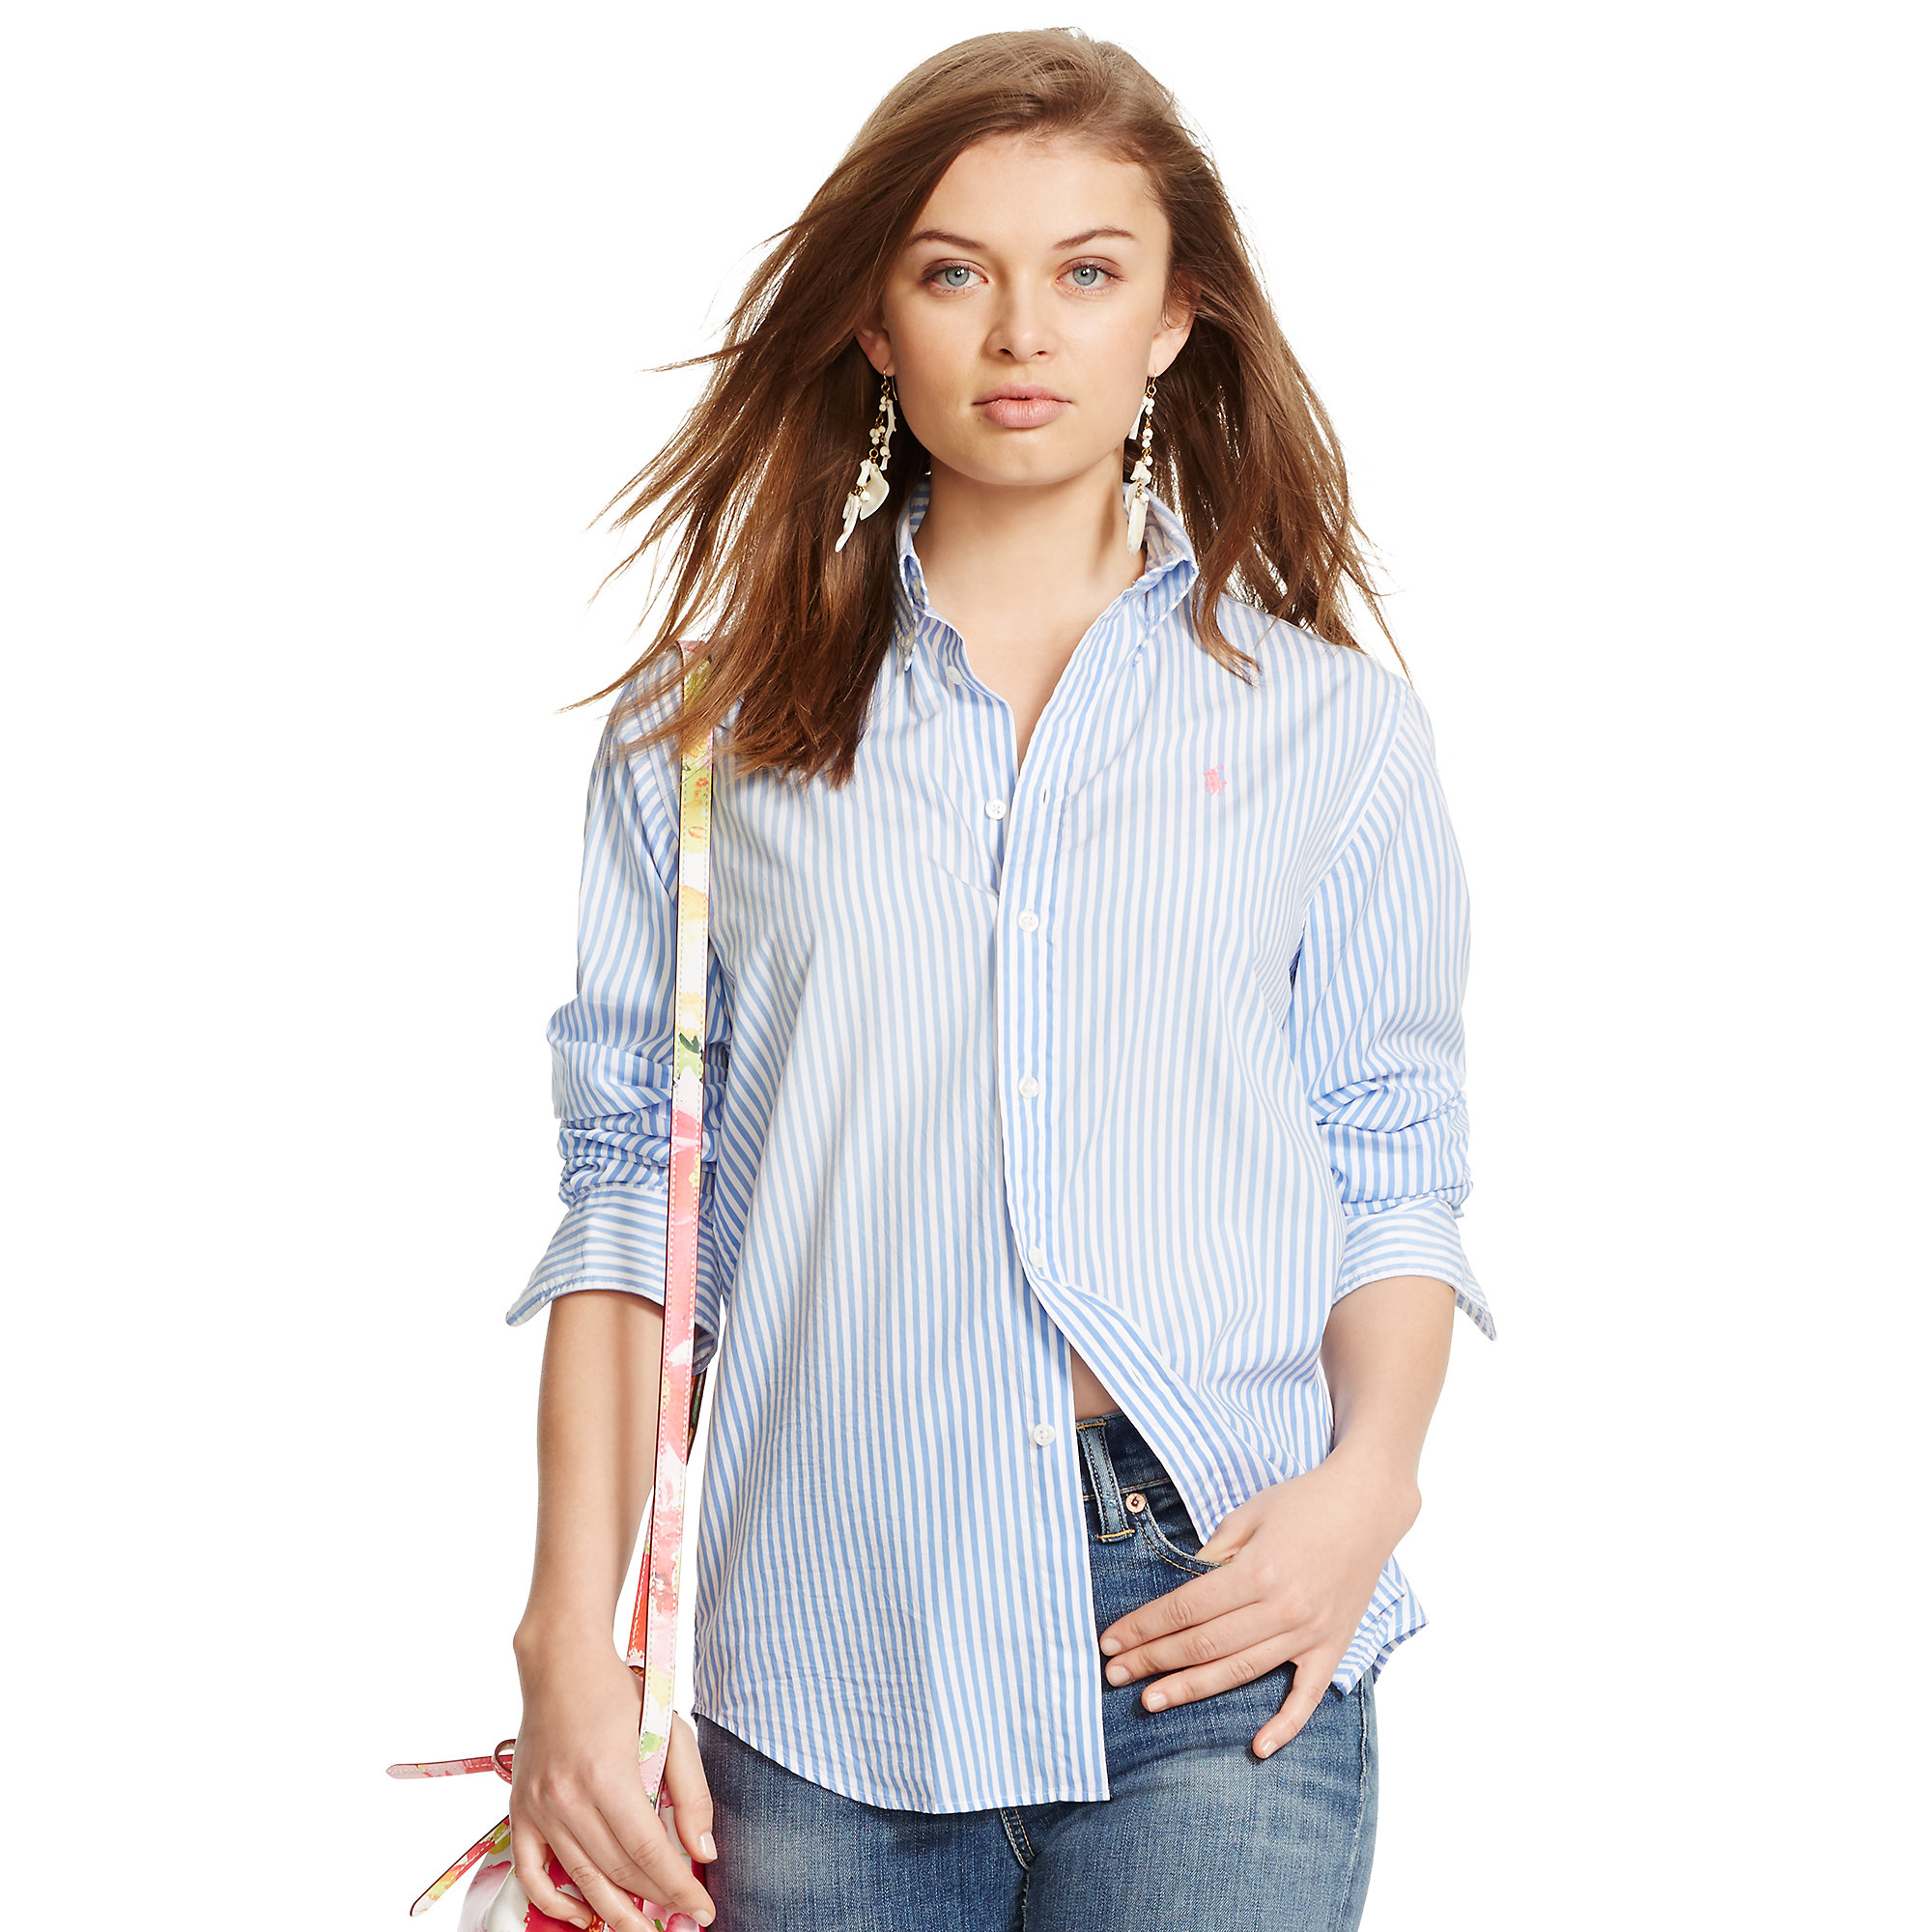 bfe29c0a395 Lyst - Polo Ralph Lauren Relaxed-fit Striped Shirt in Blue